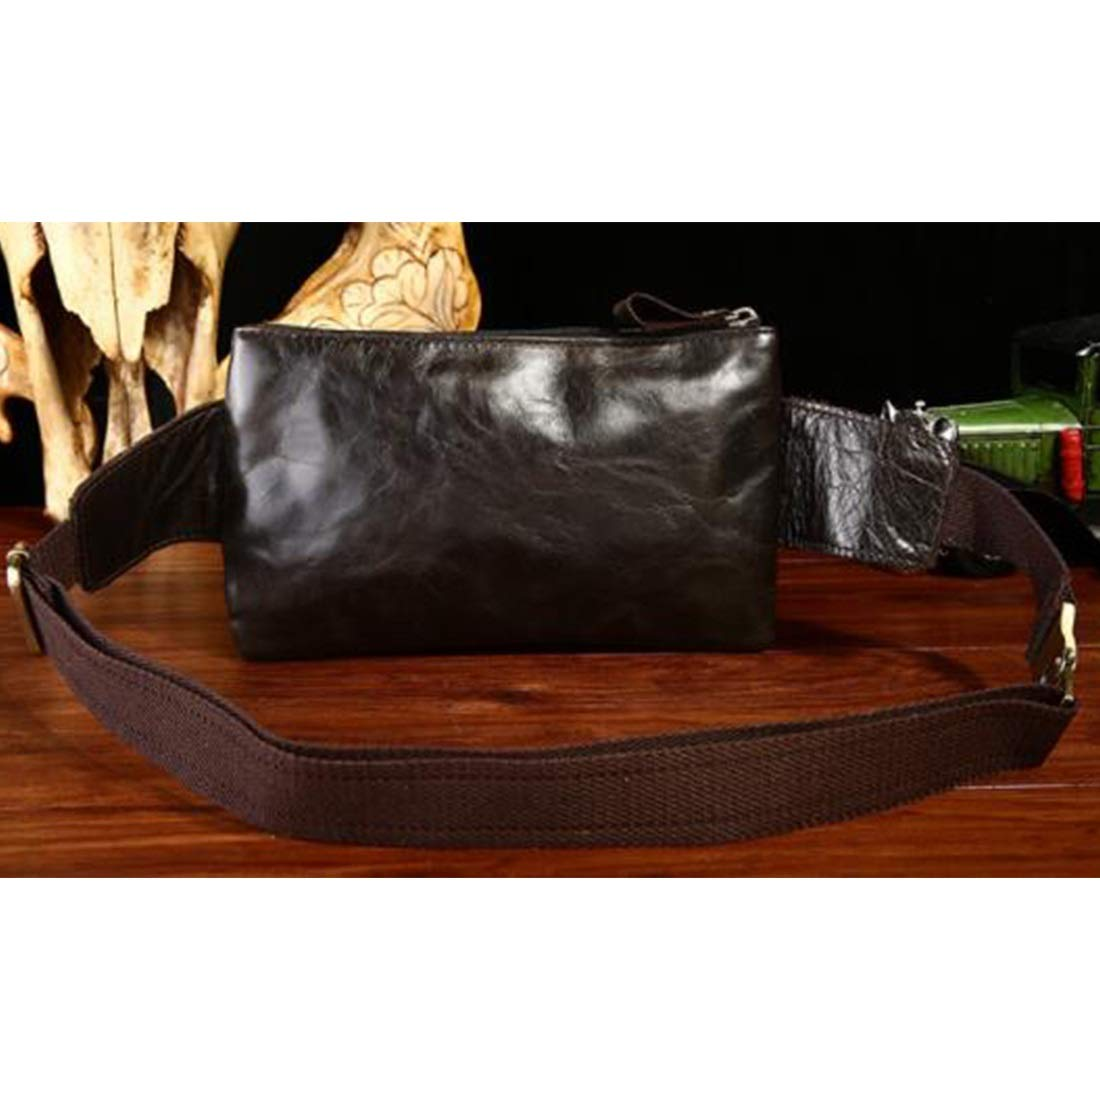 Color : Black Adams chad West Bag West Pouch Body Bag Out Genuine Leather for Exercise for Men